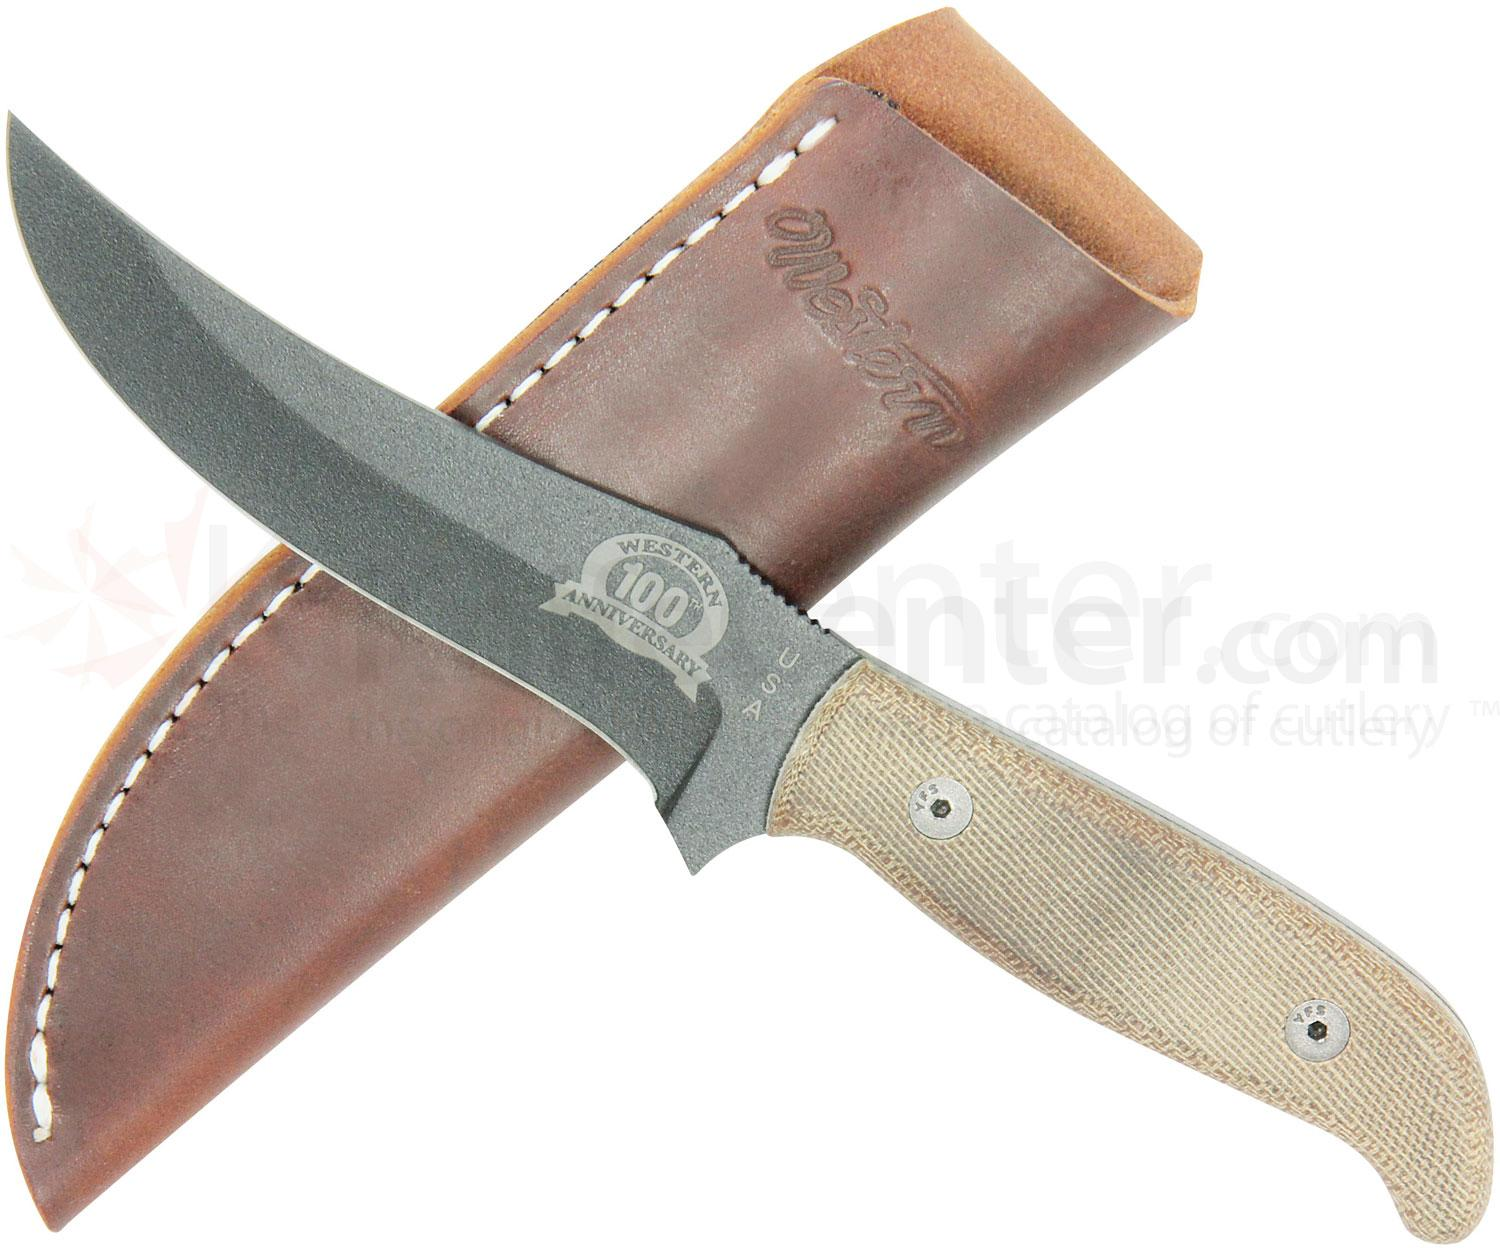 Camillus Western USA 100th Anniversary Skinner Fixed 4.75 inch 1095 Carbon Blade, Micarta Handle, Leather Sheath